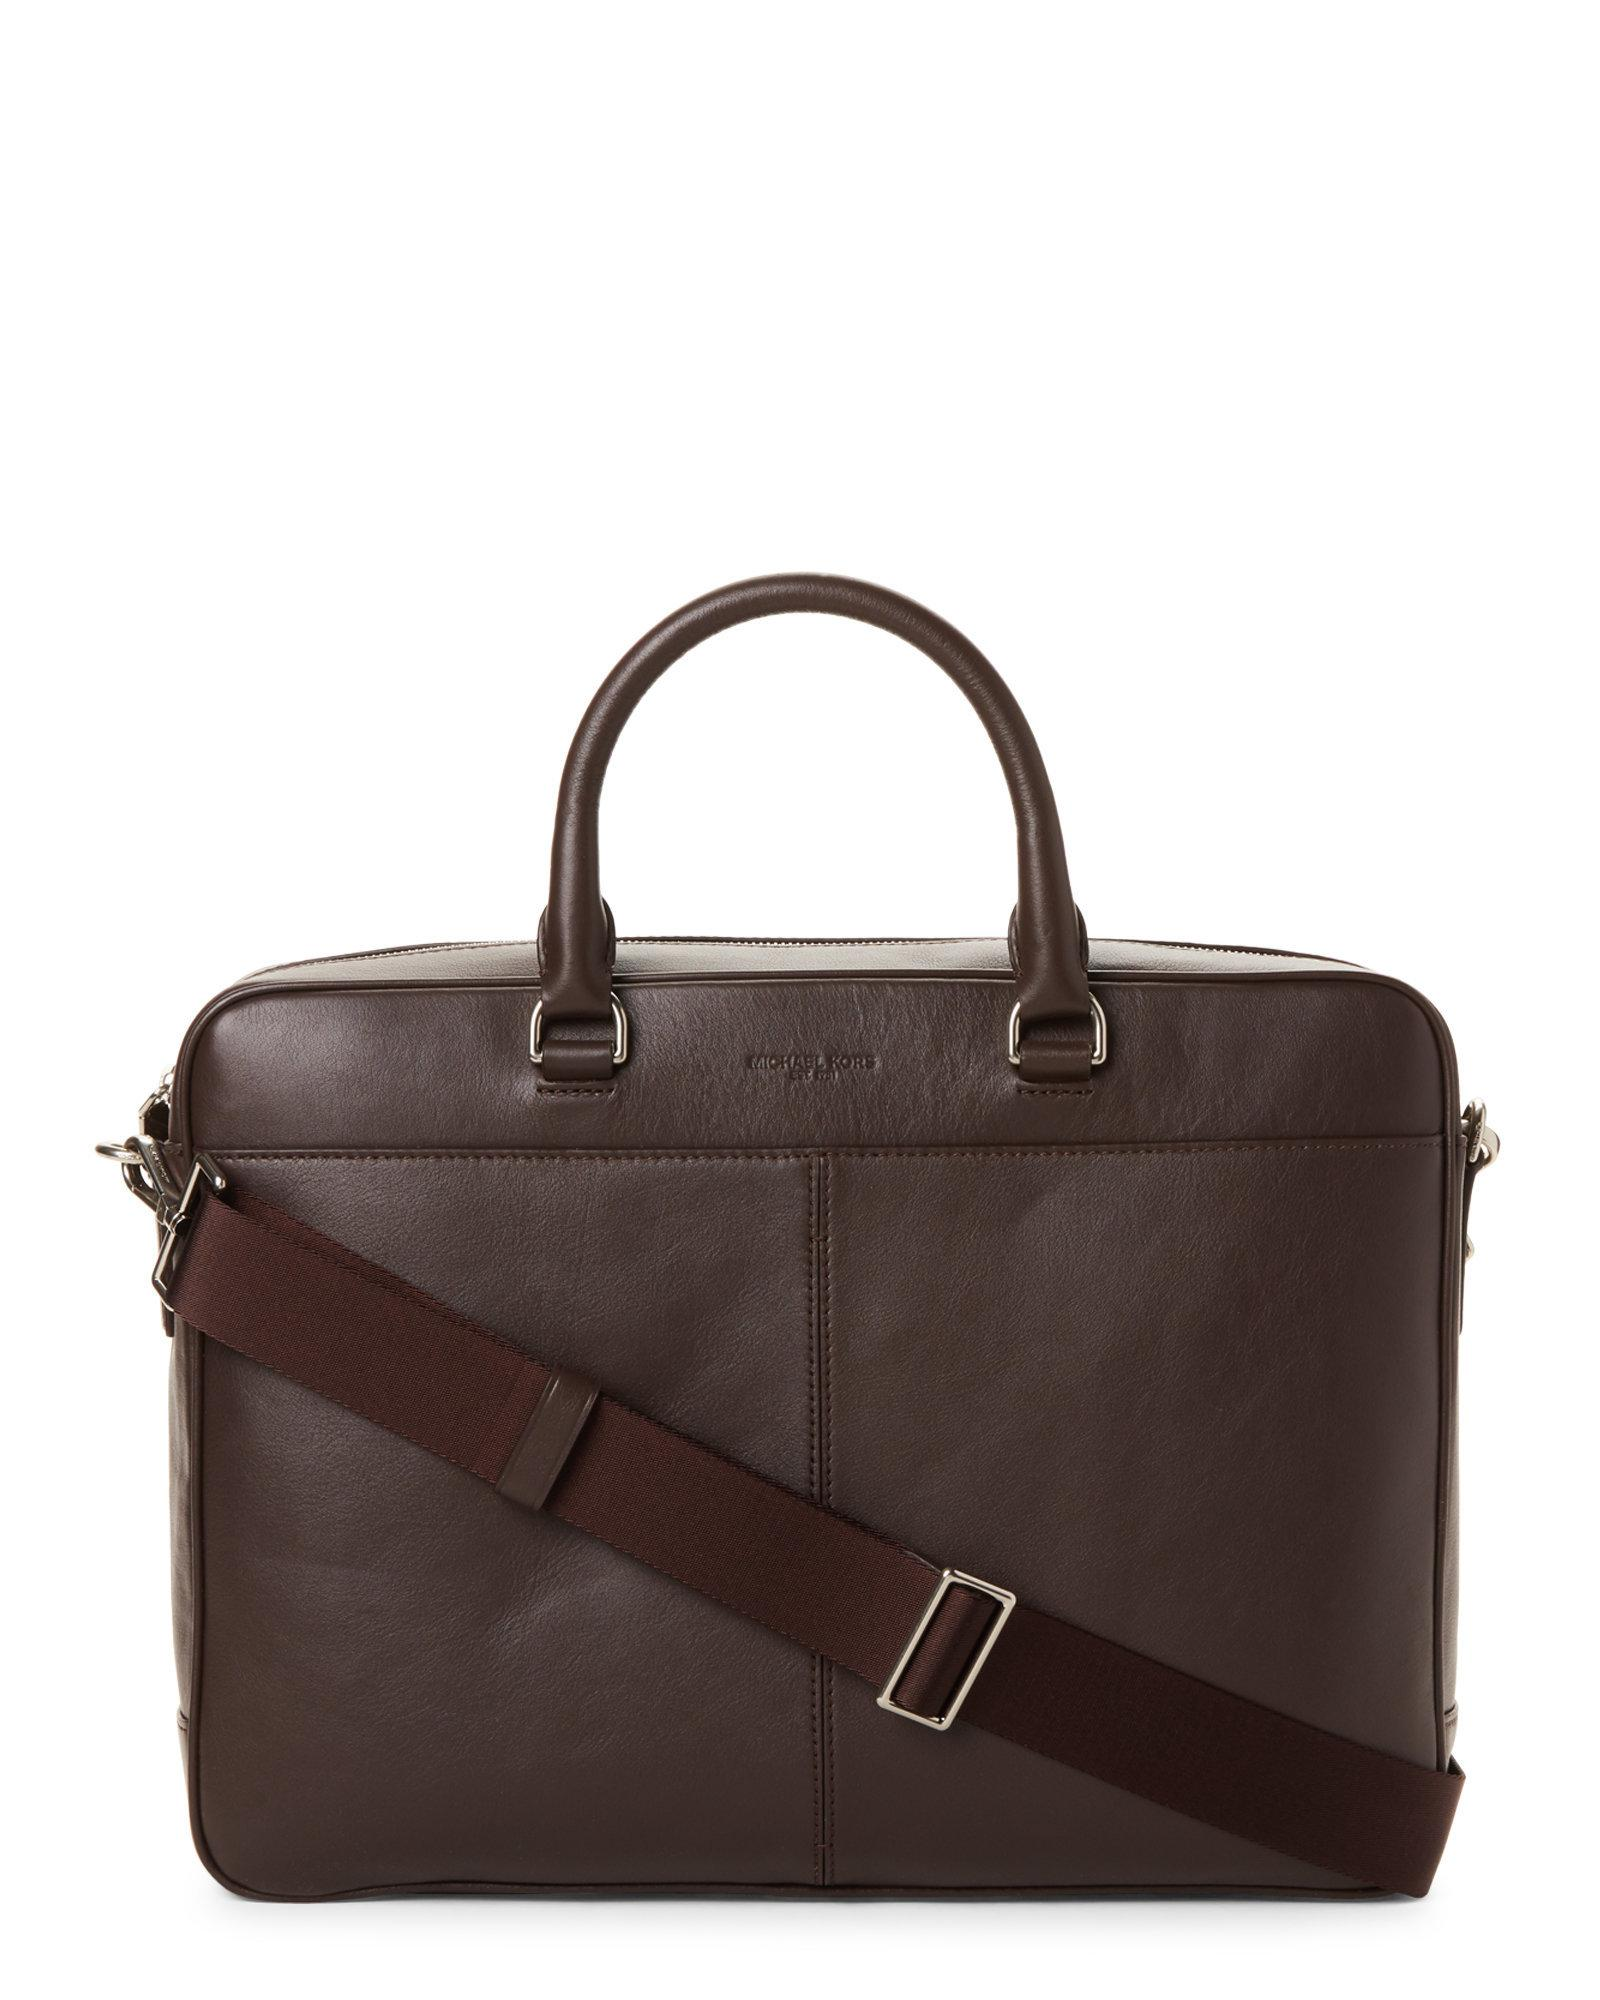 6aabe338c1f5 Lyst - Michael Kors Odin Leather Briefcase in Brown for Men